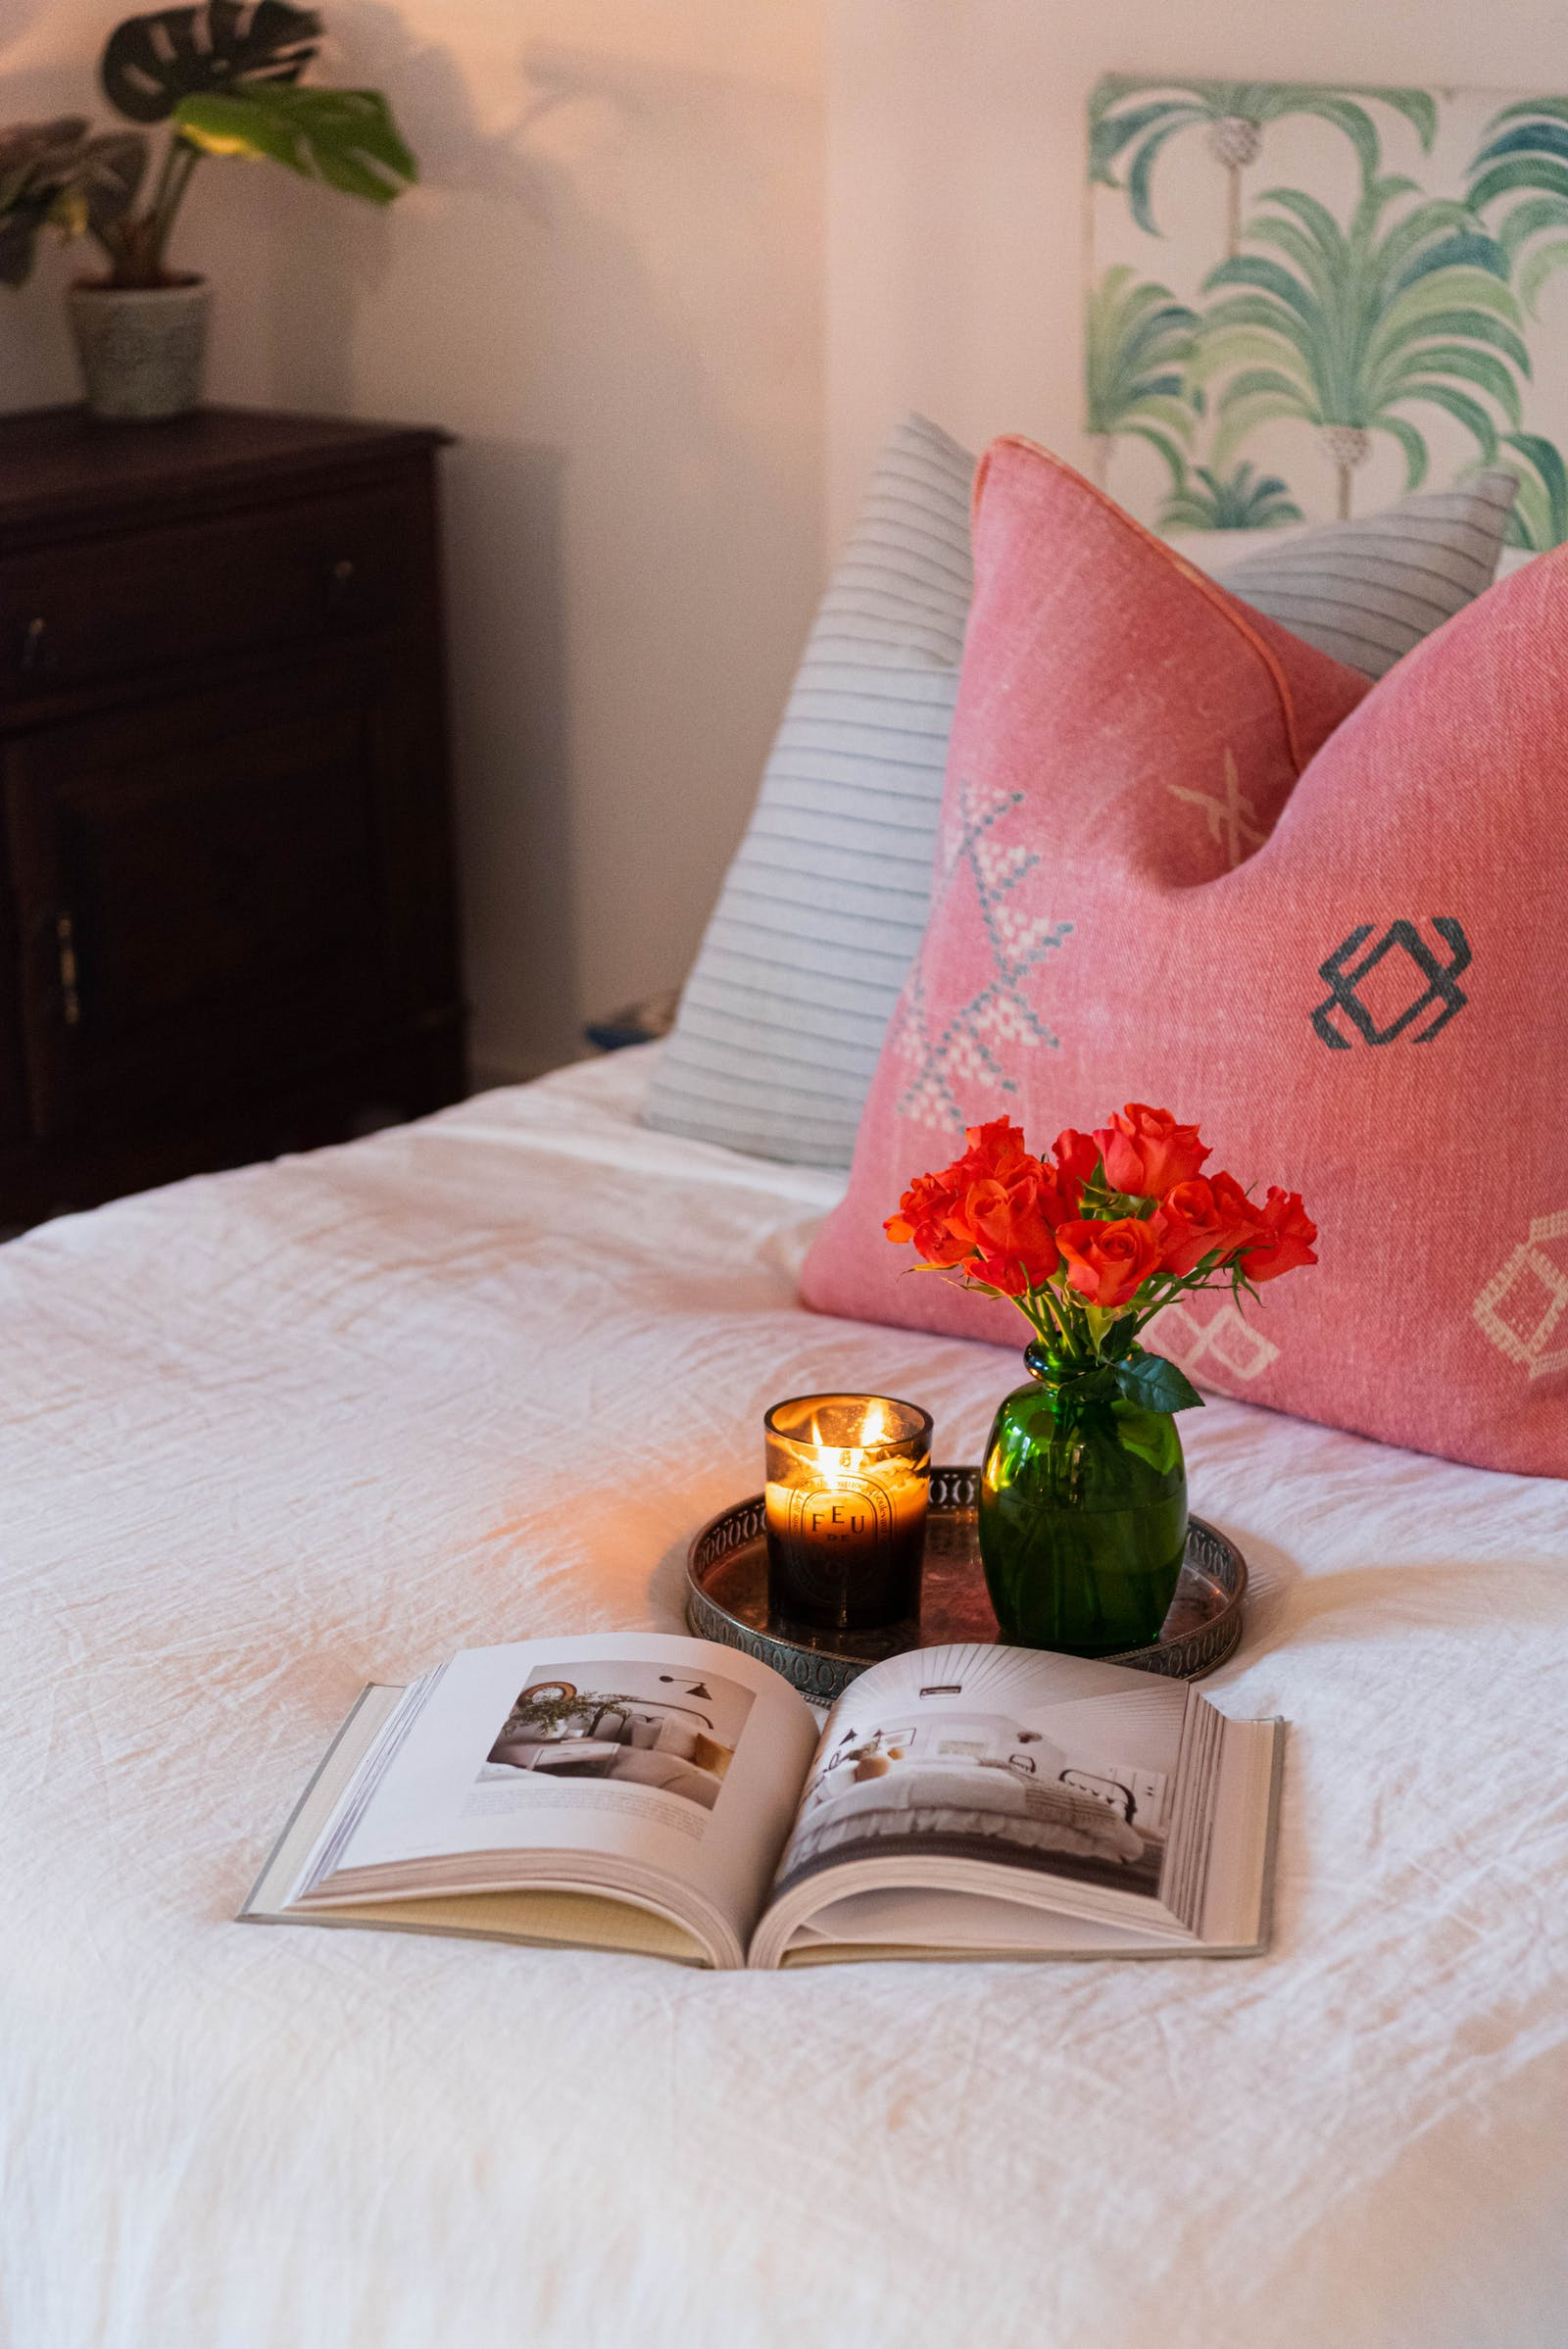 Close up image of flowers and a book on a bed that has pink and blue cushions and a palm tree pattered headboard